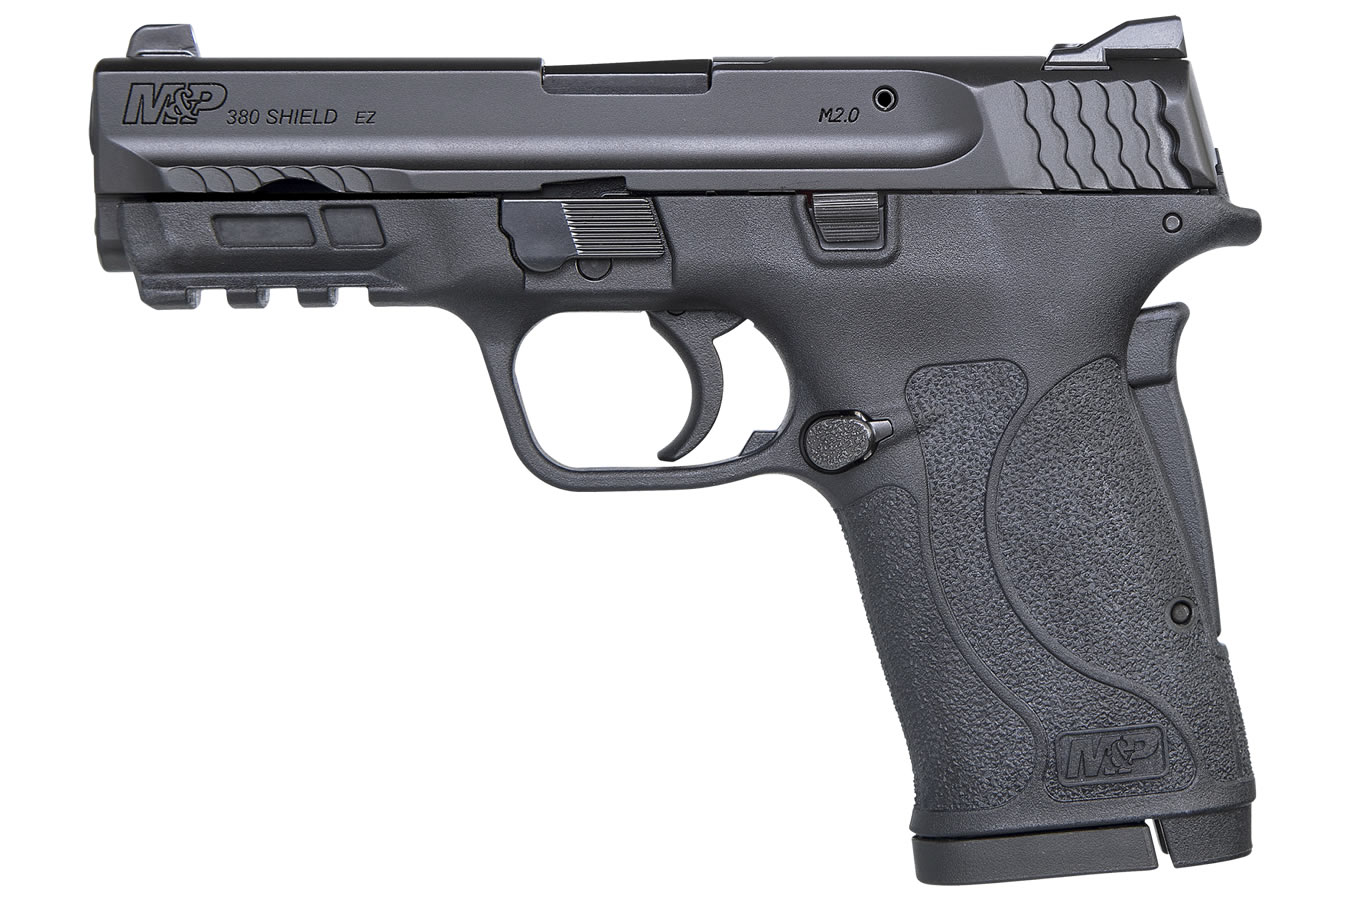 MP380 SHIELD EZ 380 ACP NO THUMB SAFETY